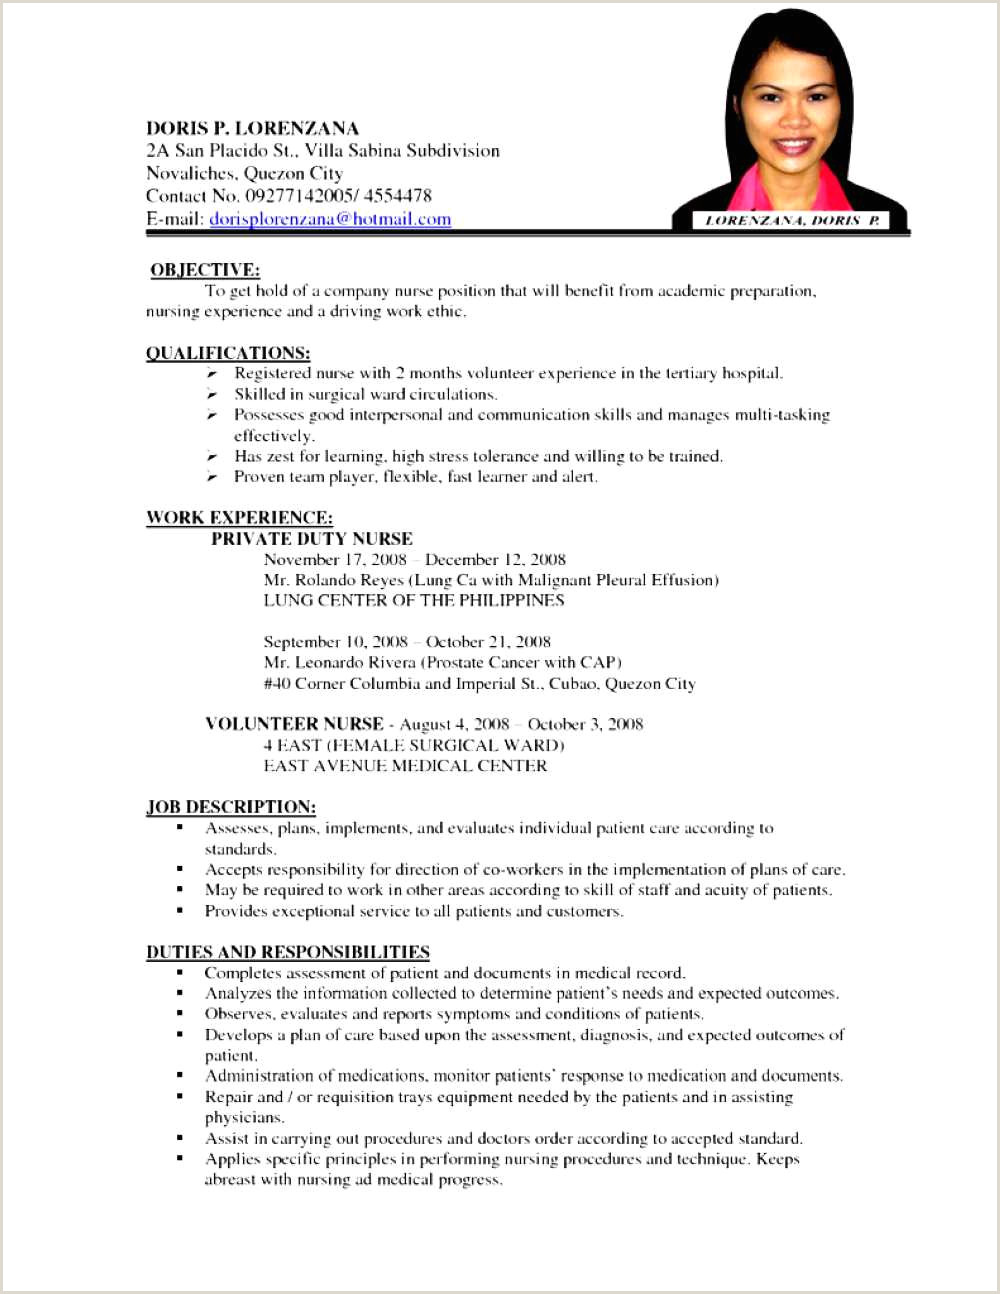 Resume Format For Nursing Job Free Download Resume Format For Nursing Job Free Download – Flamingo Spa